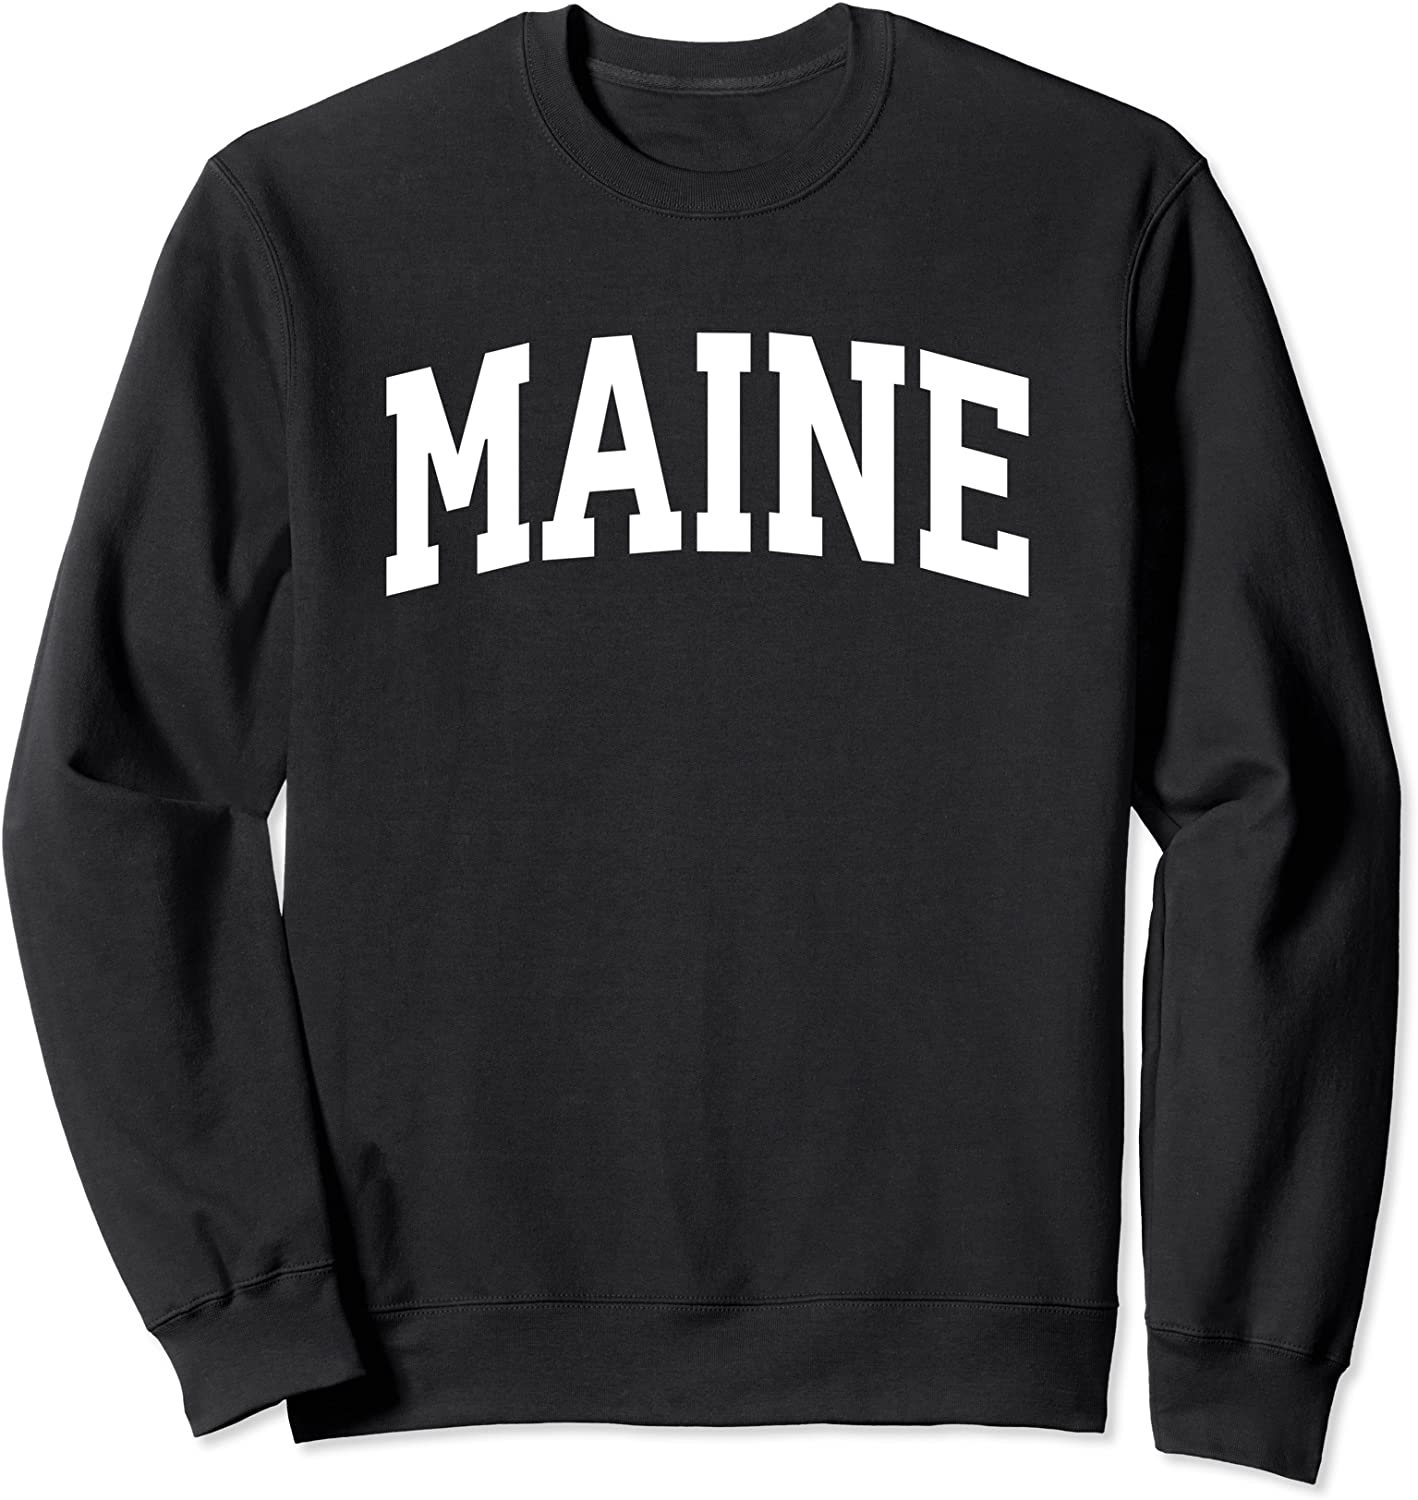 Maine Crewneck Sweatshirt Sports College Gifts Super special price State lowest price Style